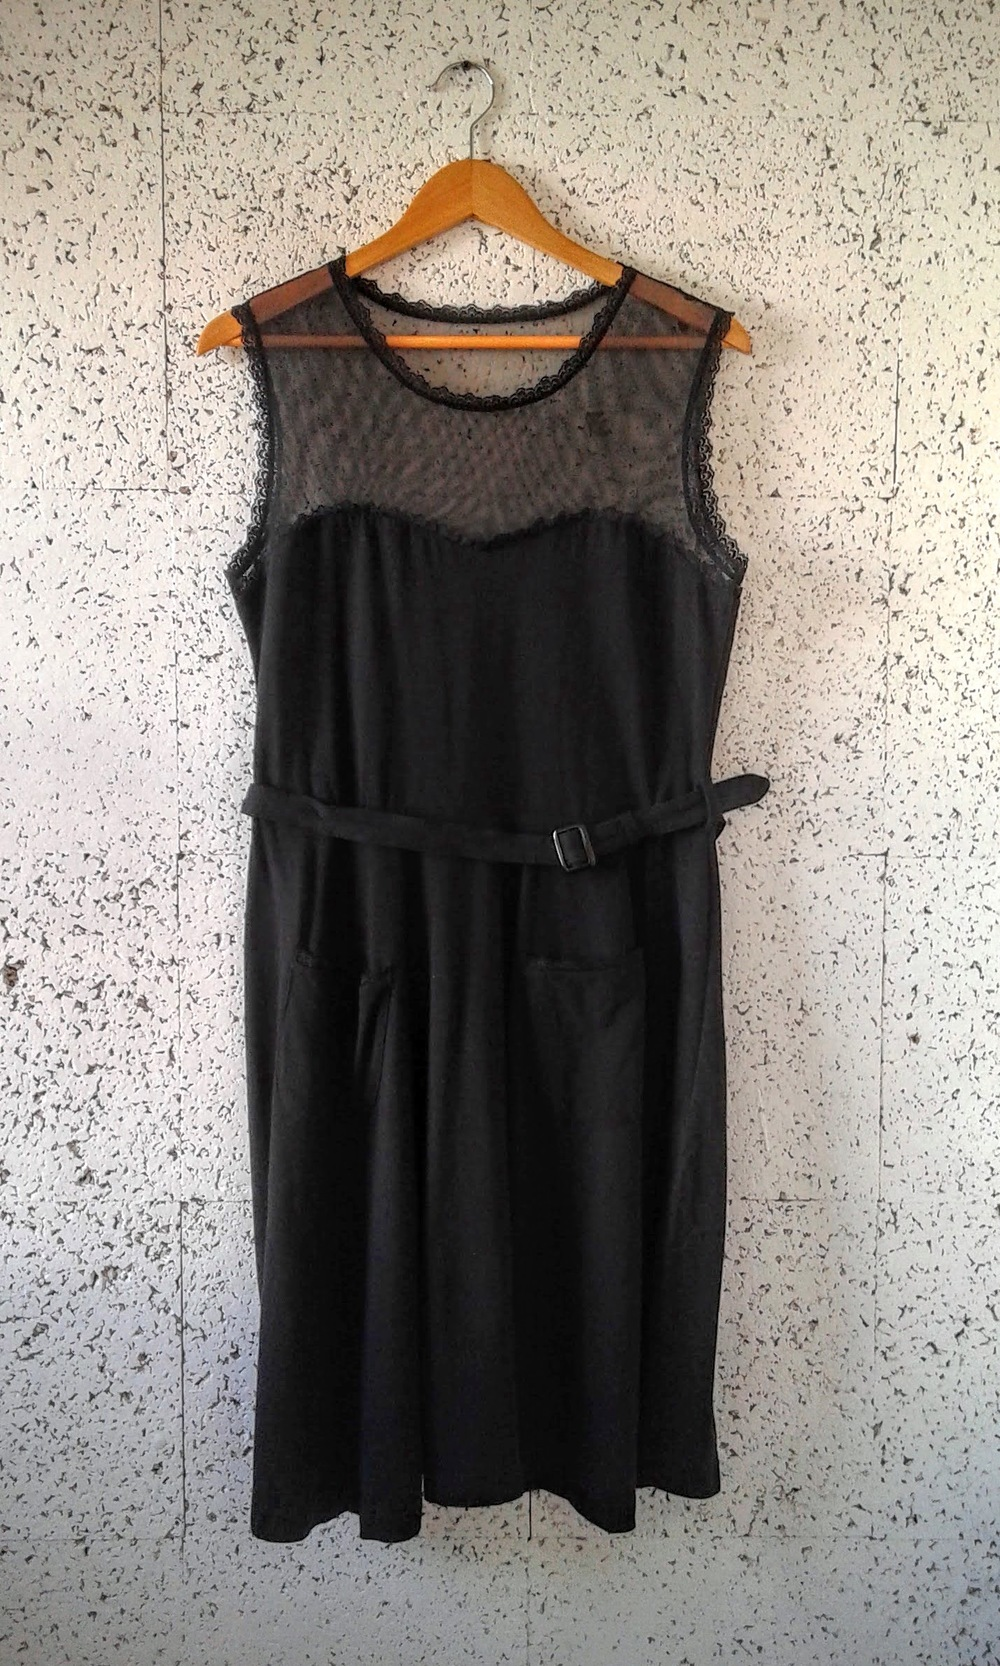 Effie's Heart dress; Size XL, $32